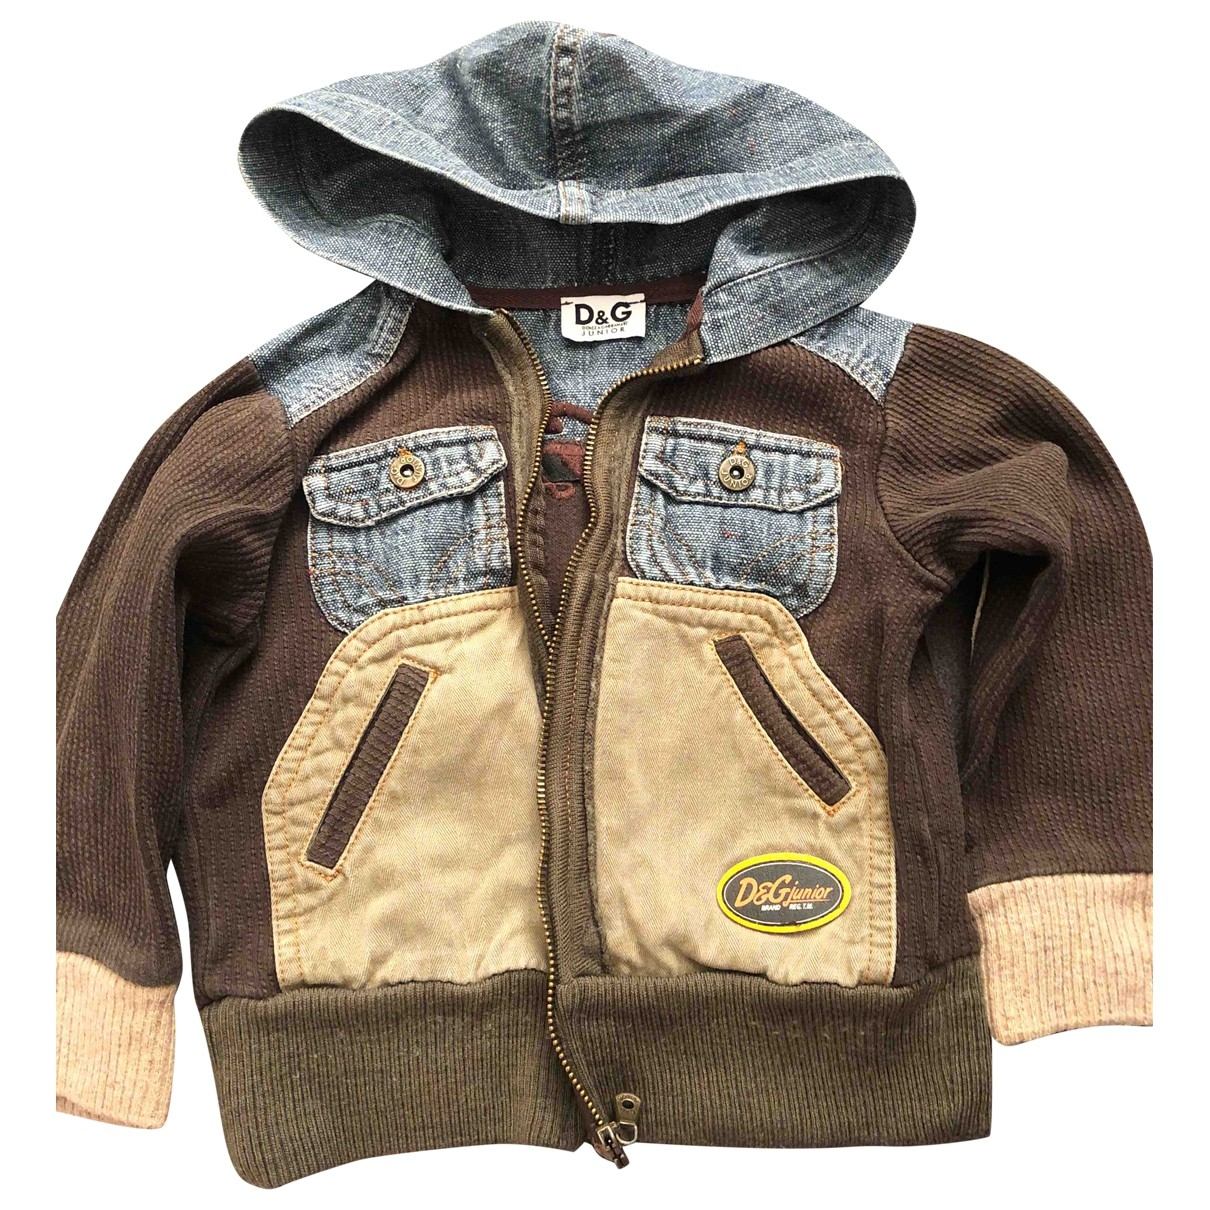 D&g \N Multicolour Cotton jacket & coat for Kids 2 years - up to 86cm FR